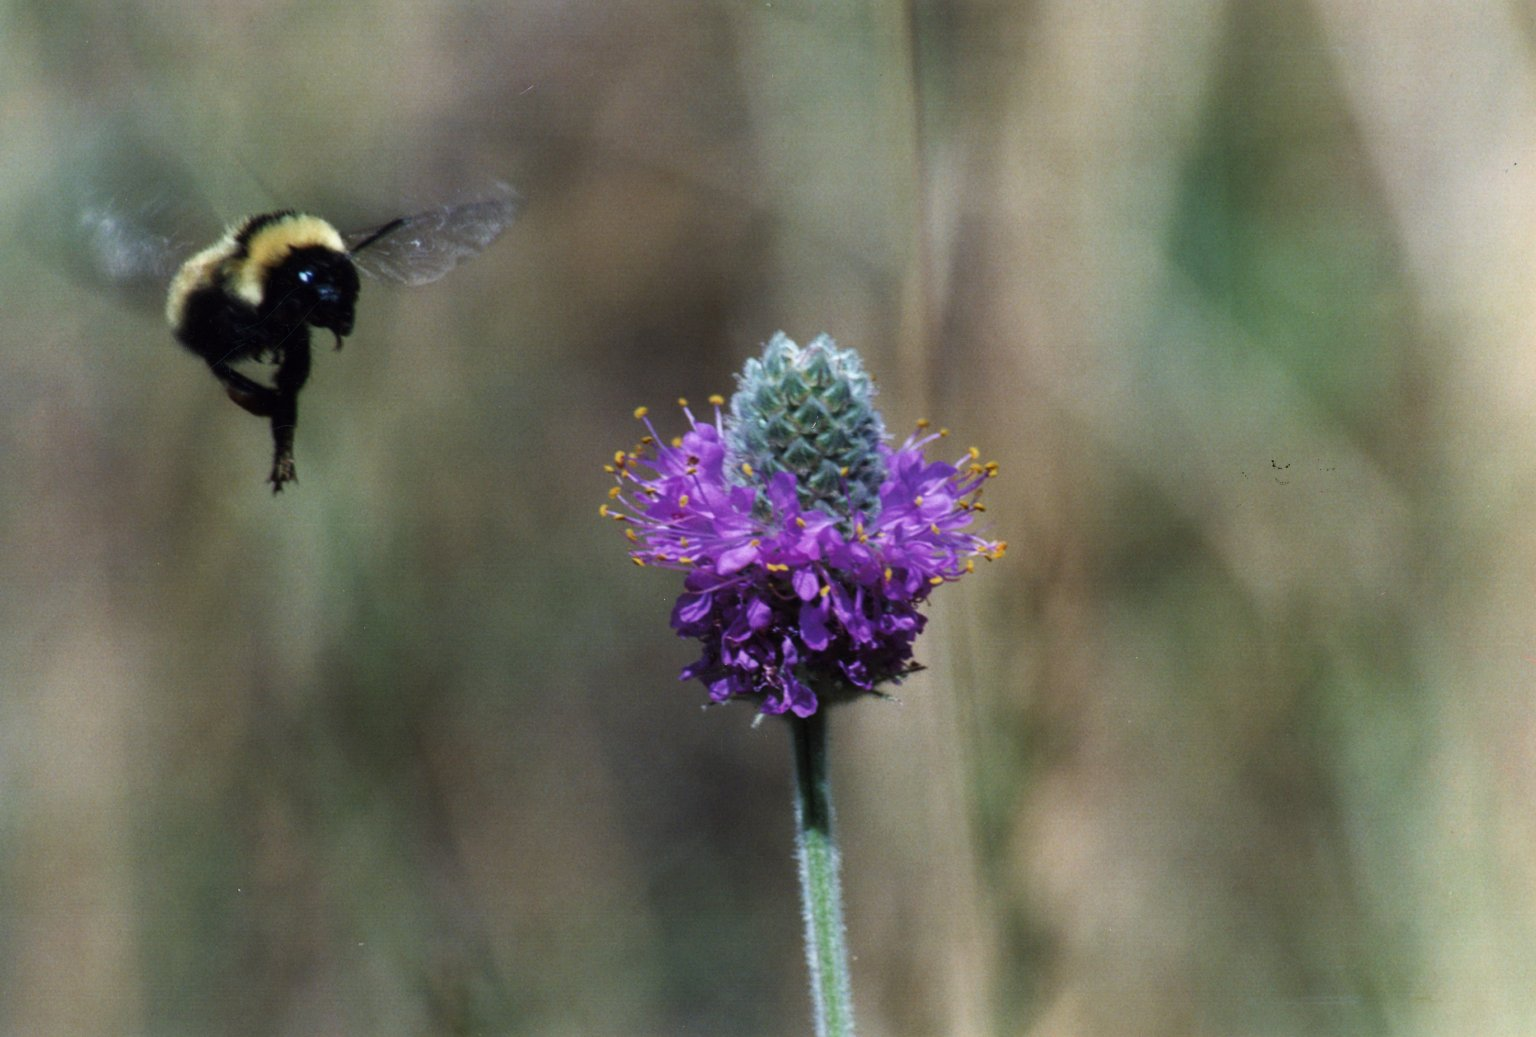 Image of flying bee and purple flower